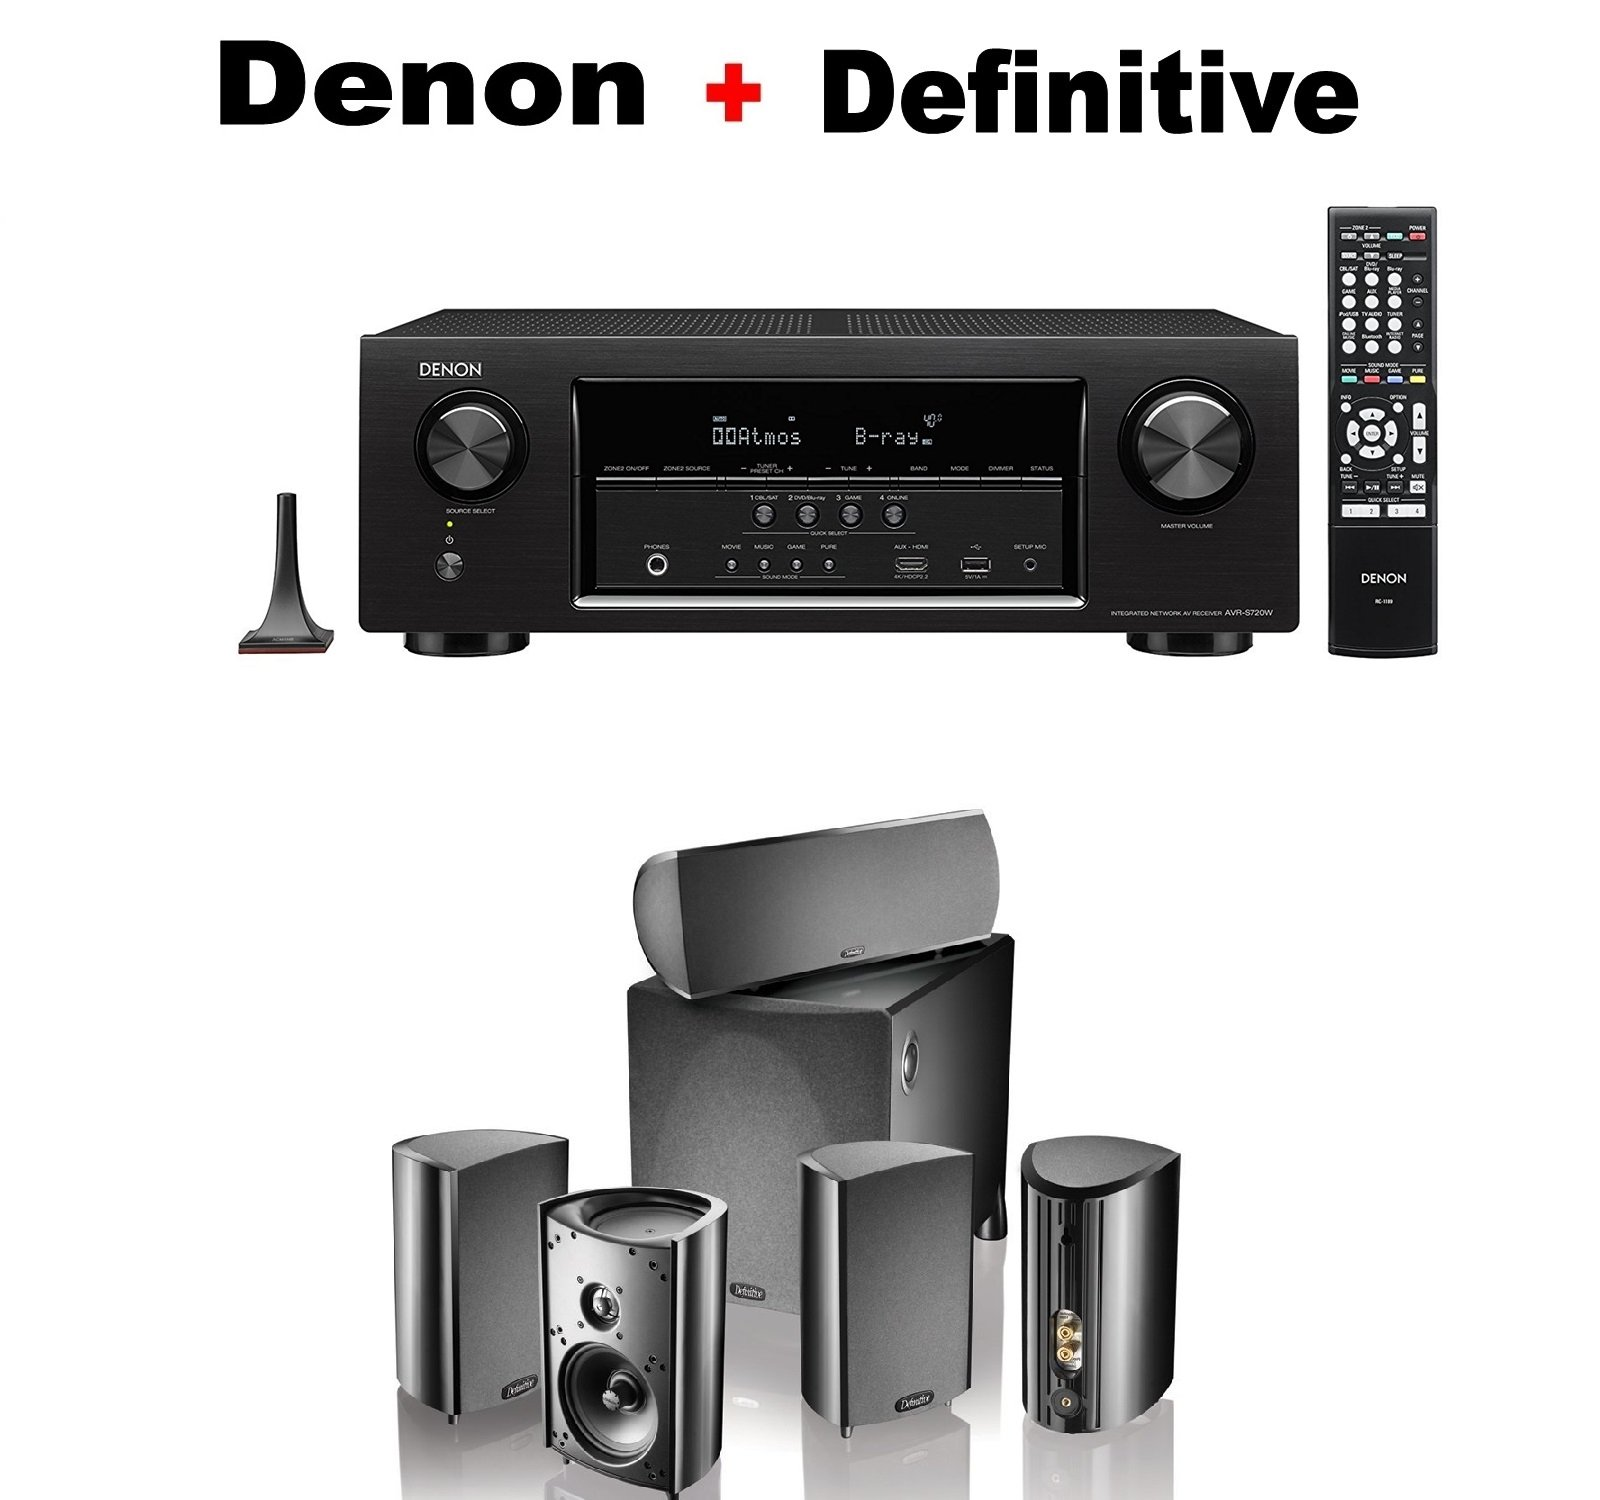 Denon AVRS720W 7.2 Channel HD AV Receiver with Built In WiFi and Bluetooth + Definitive Technology Pro Cinema 800 System Black Bundle by Denon